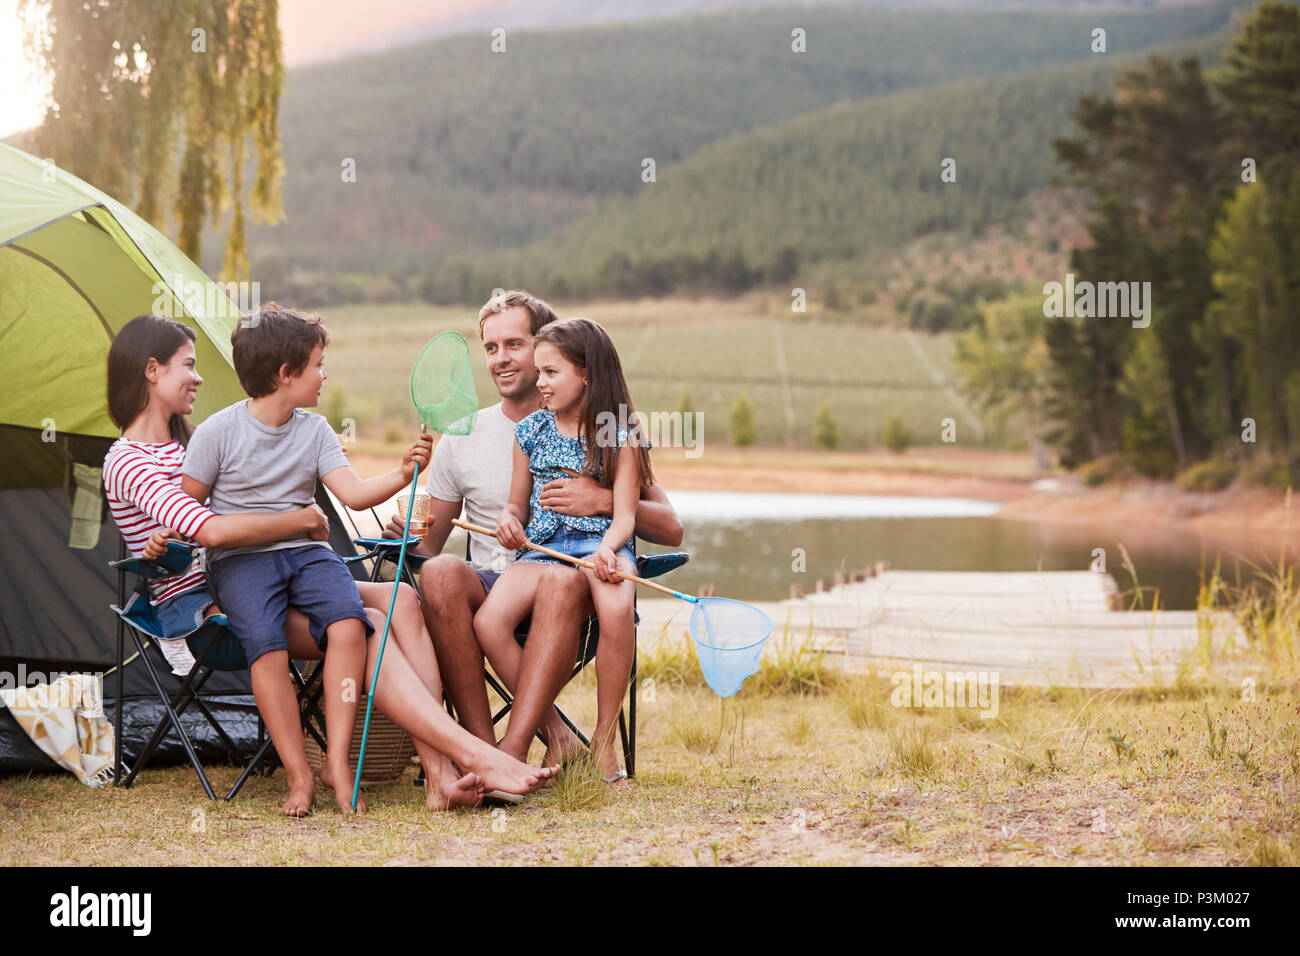 Family Enjoying Camping Vacation By Lake Together - Stock Image